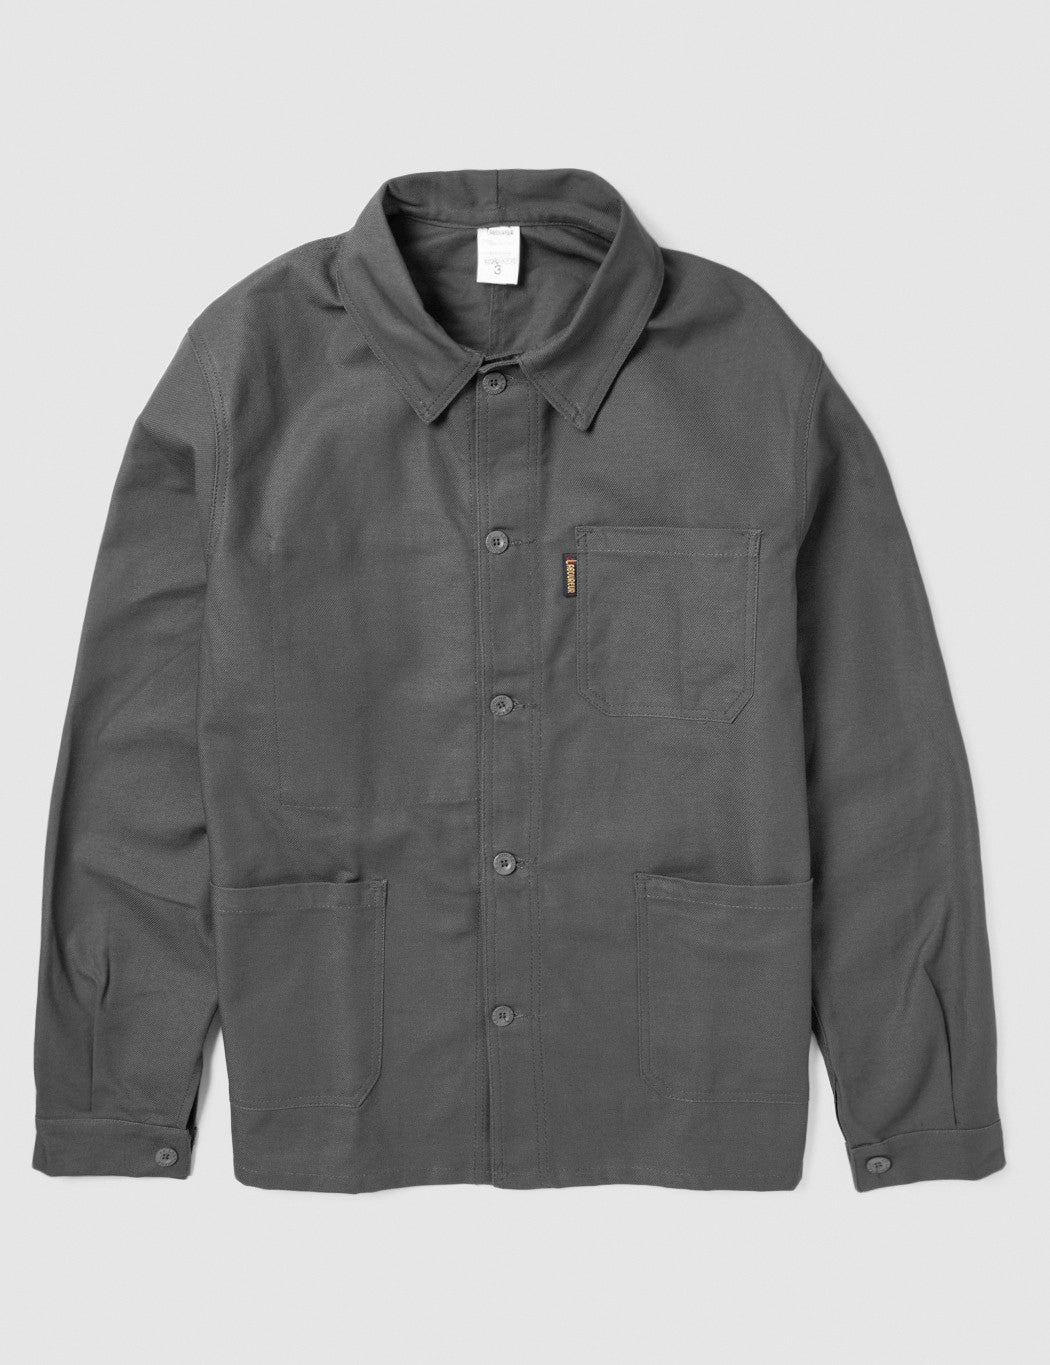 Le Laboureur Cotton Work Jacket - Charcoal Grey